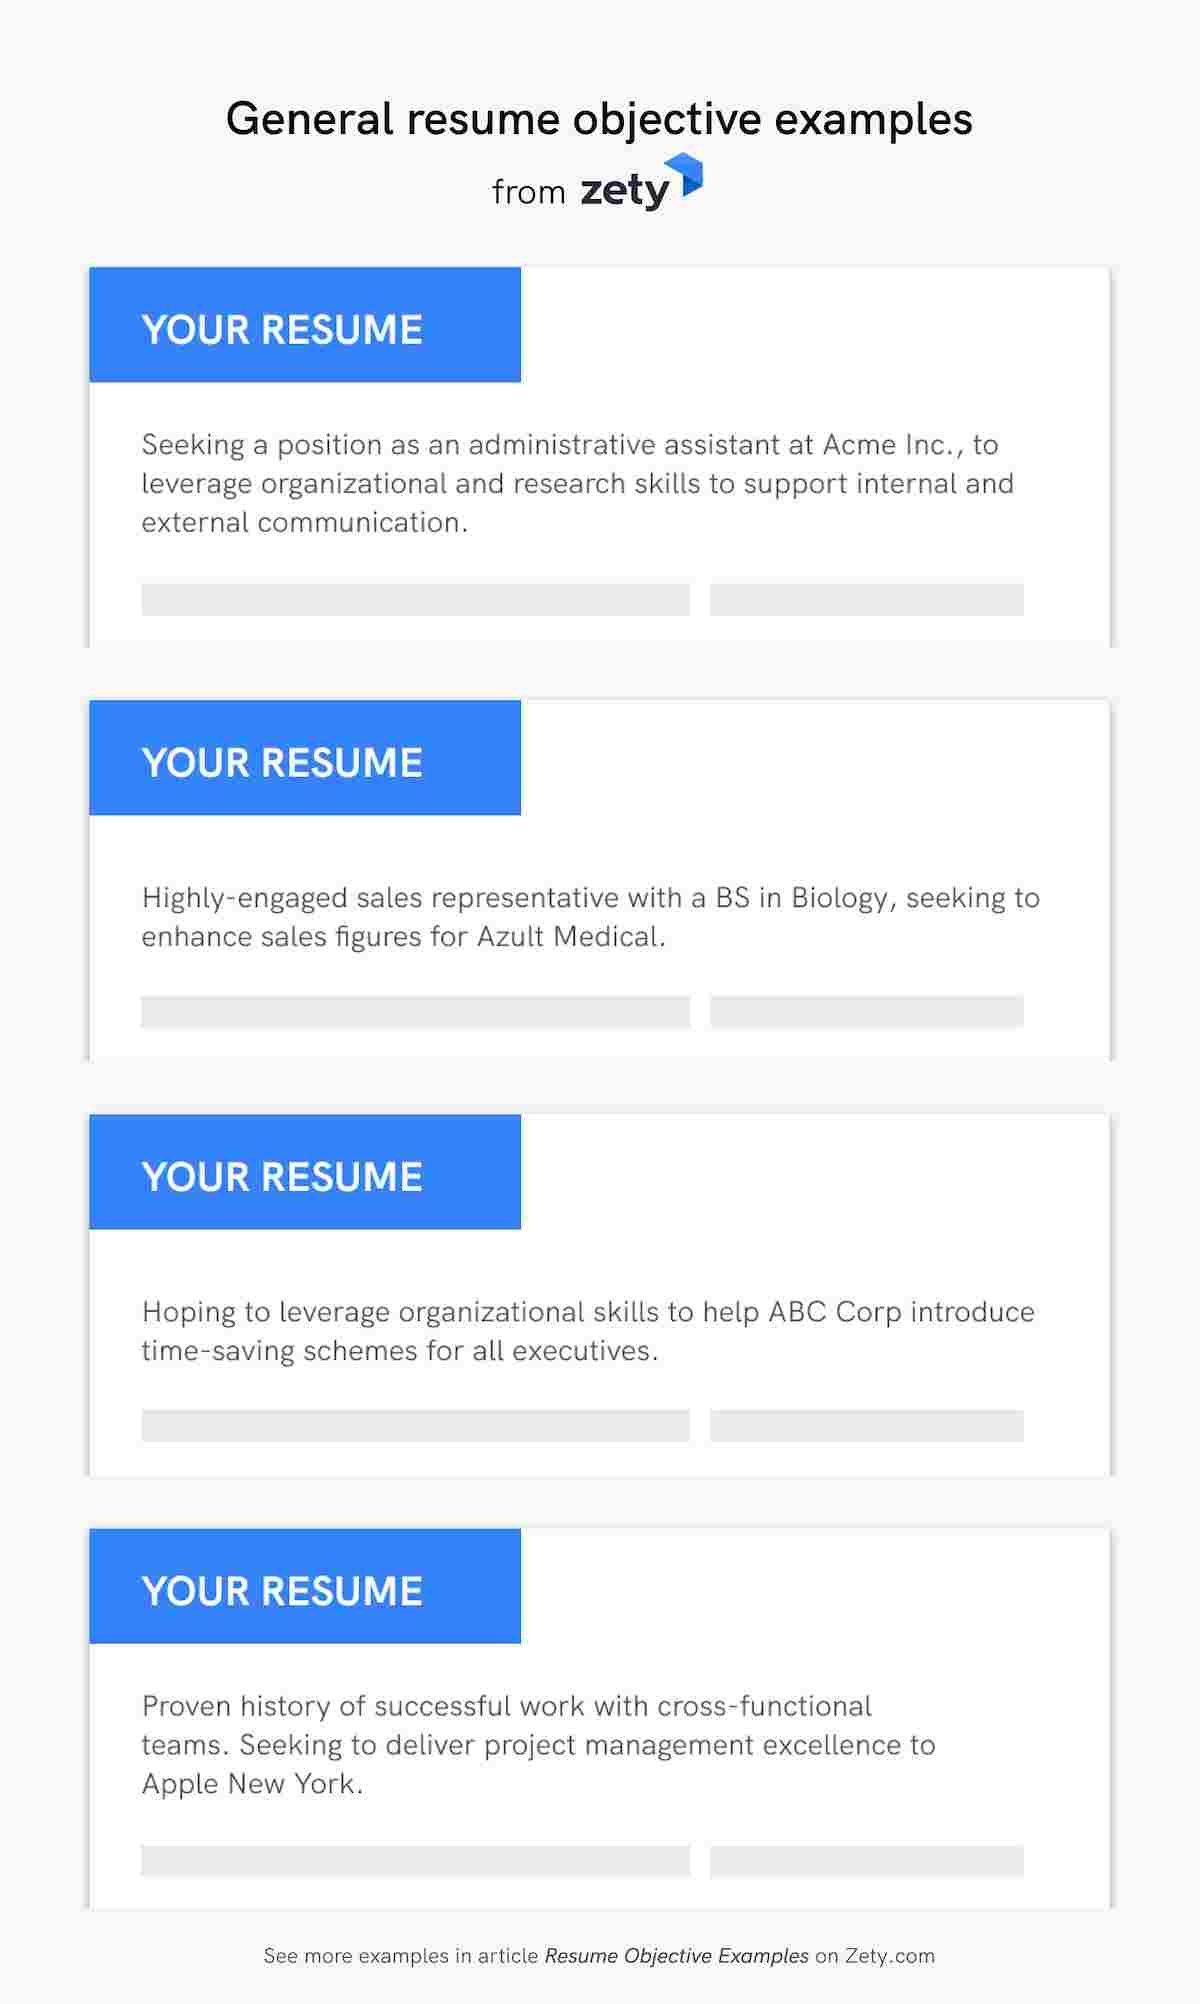 resume objective examples career objectives for all jobs general business structural Resume General Business Resume Objective